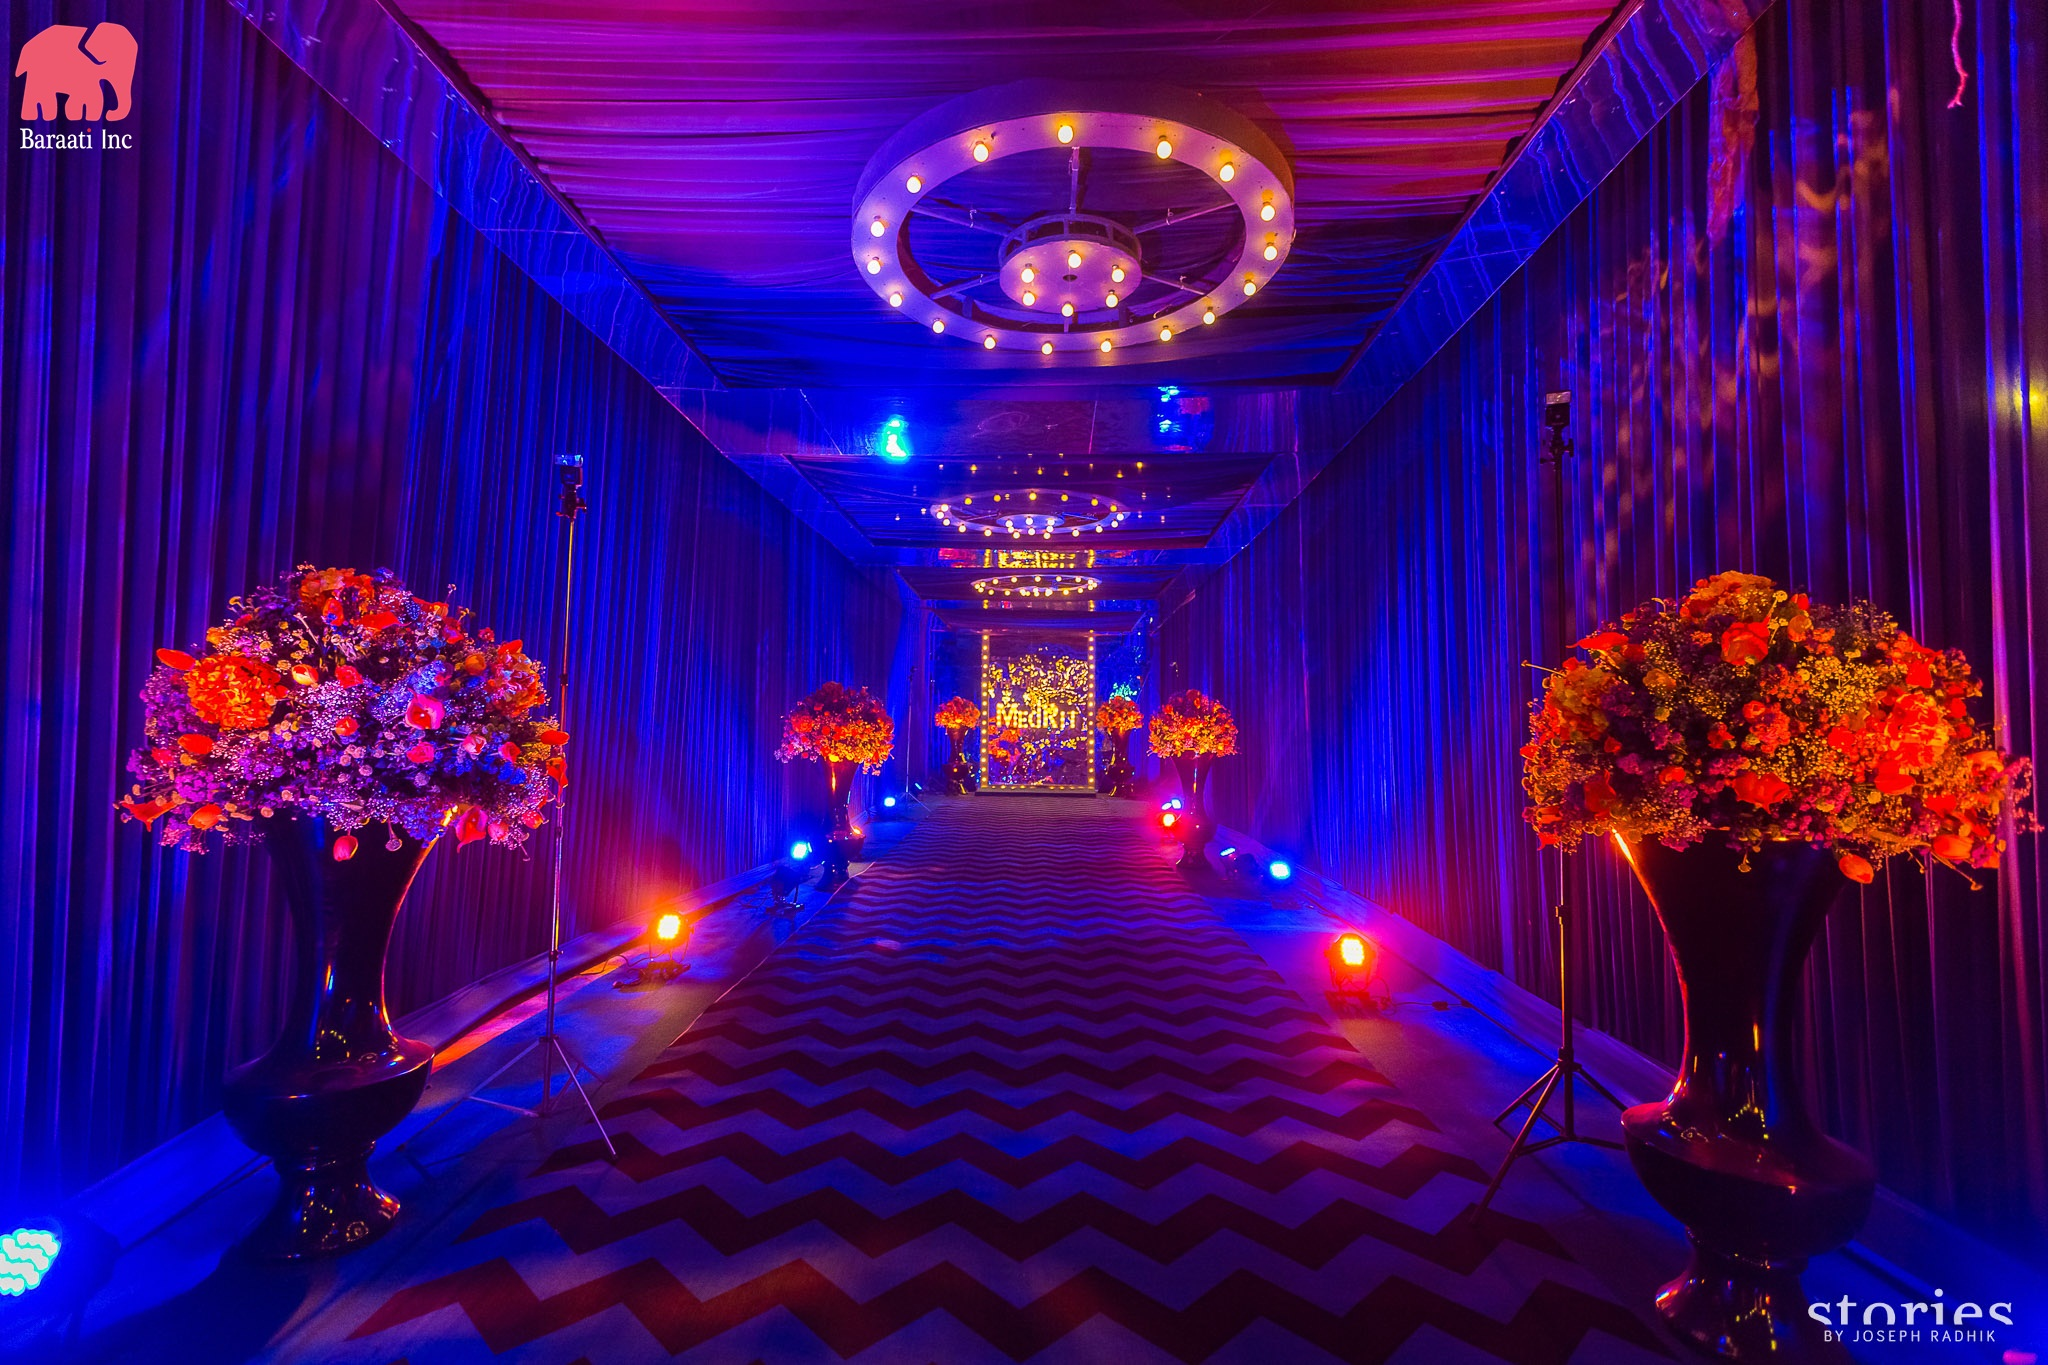 Wedding venue decorations by Baraati Inc | This Couple's IIFA Themed Sangeet Is the Most Fun Thing You'll See Today | FunctionMania